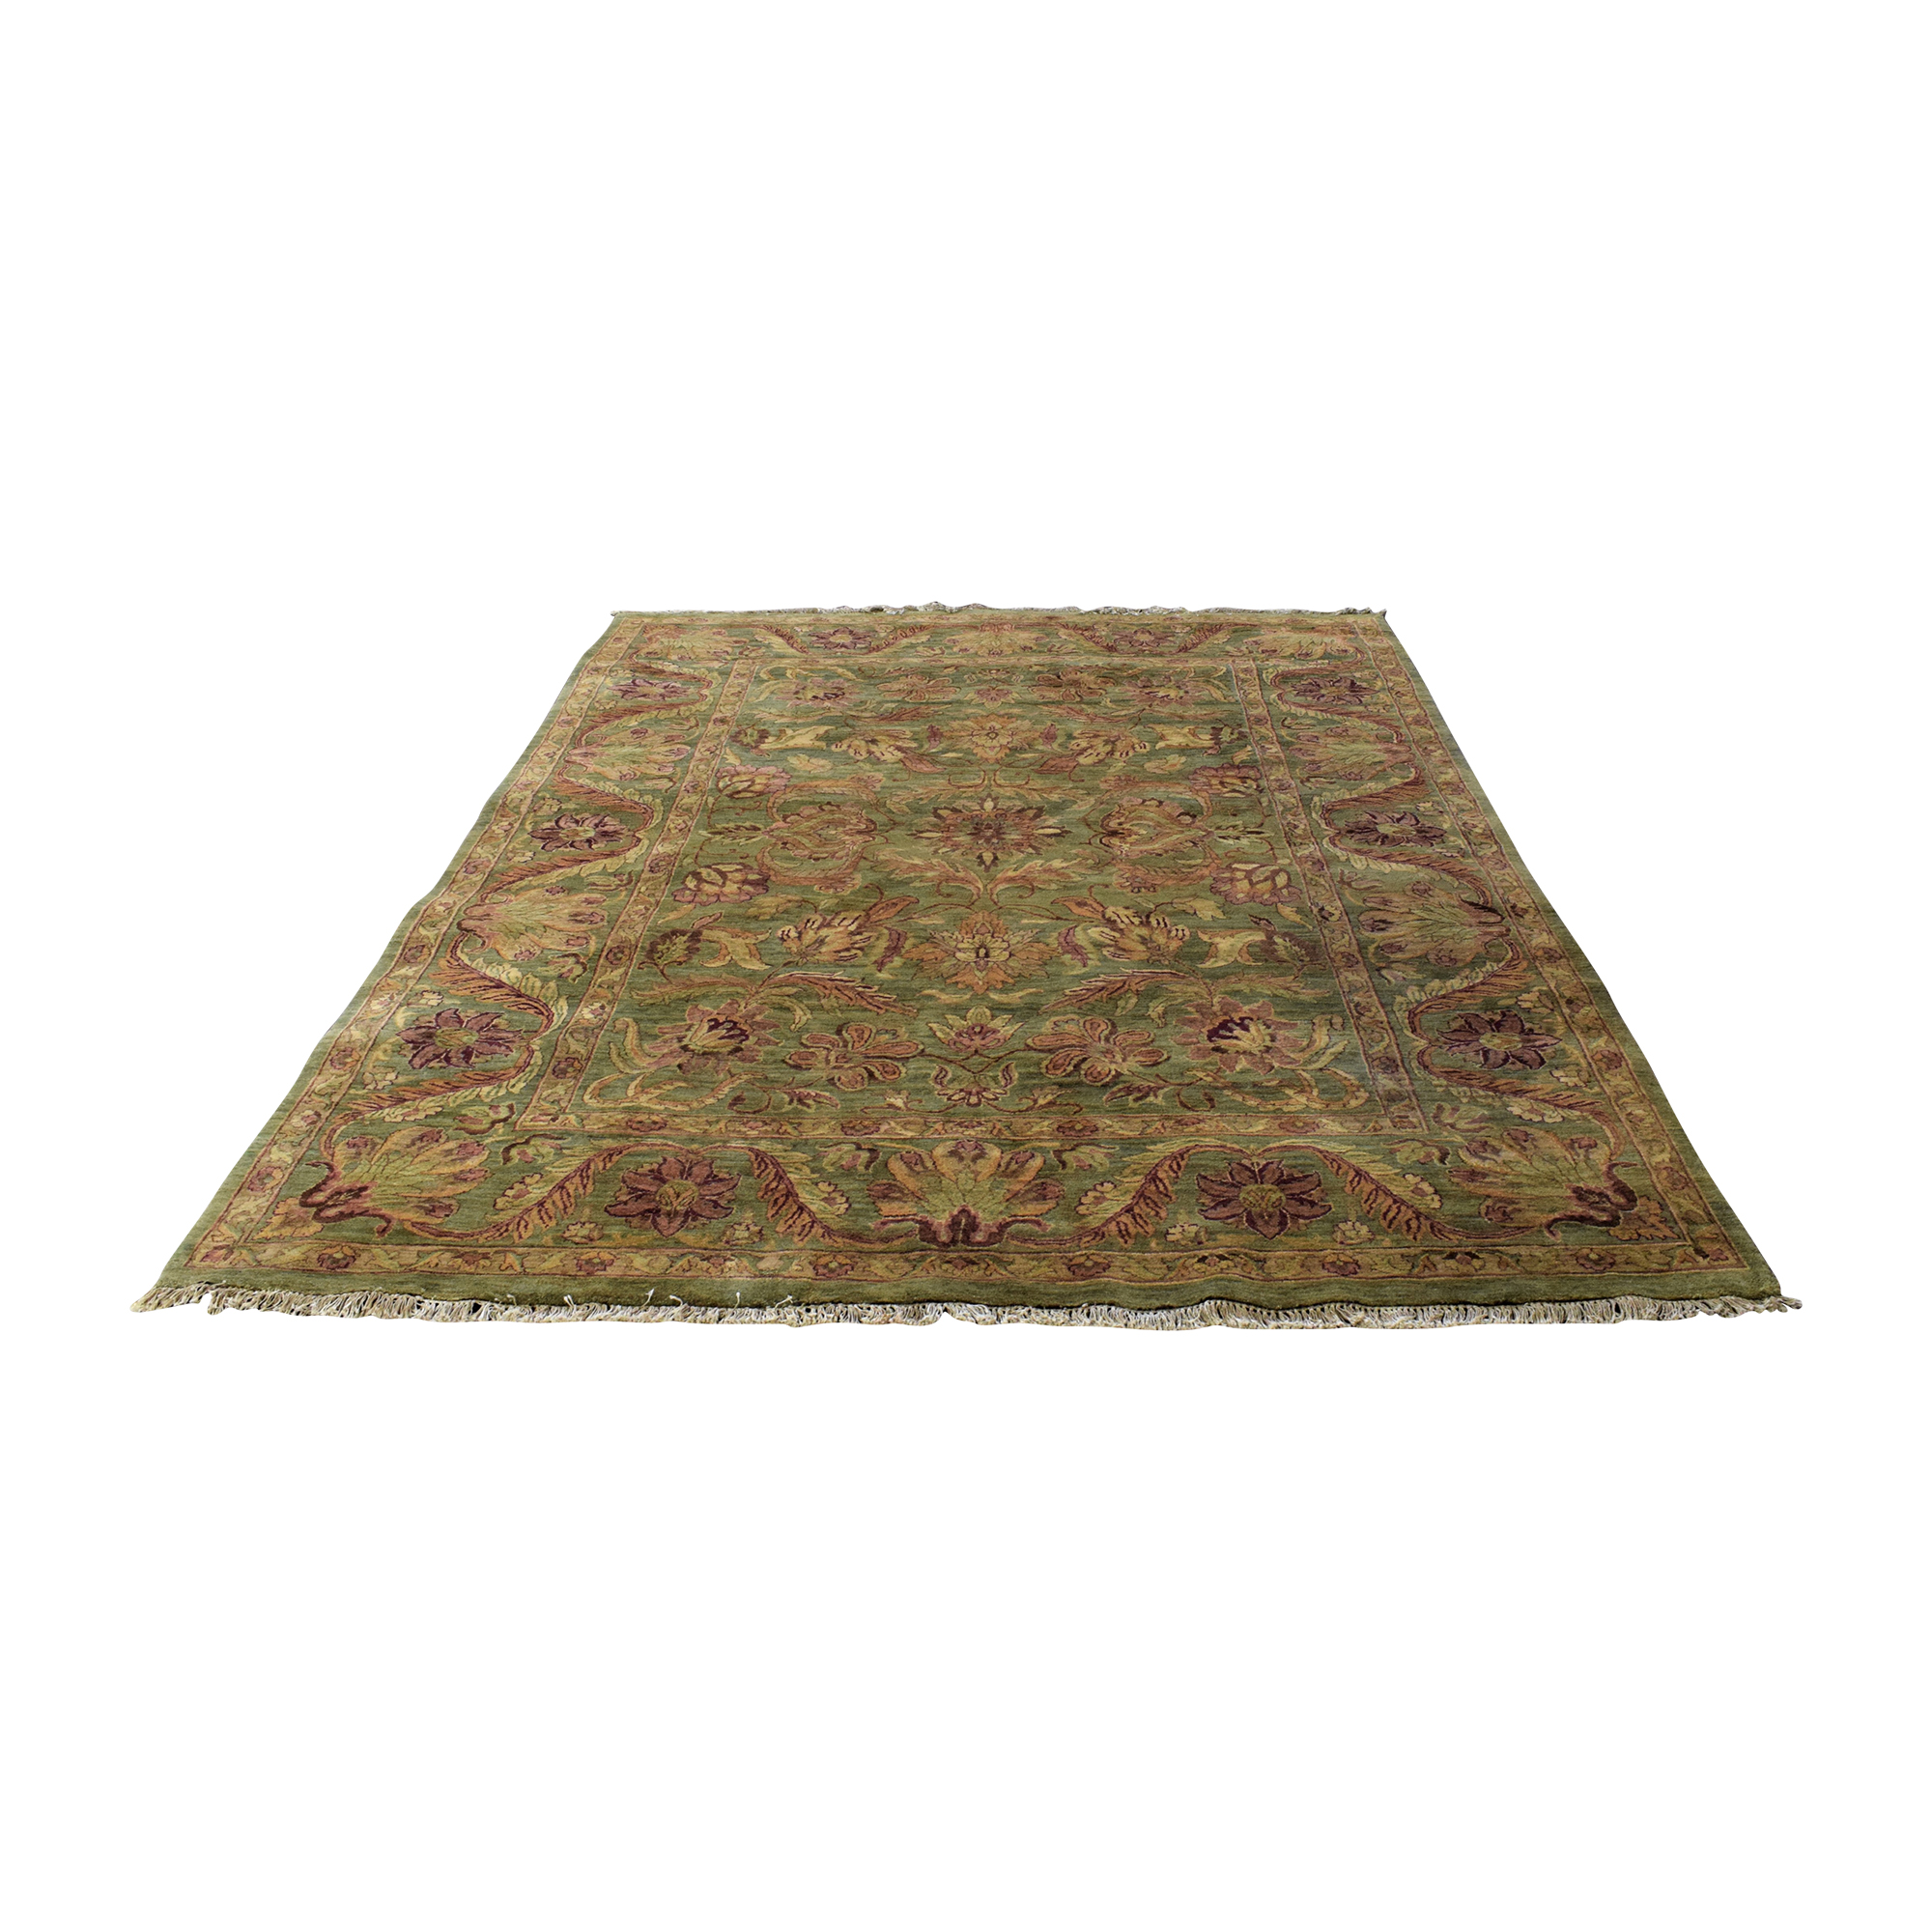 Large Area Rug with Tassels